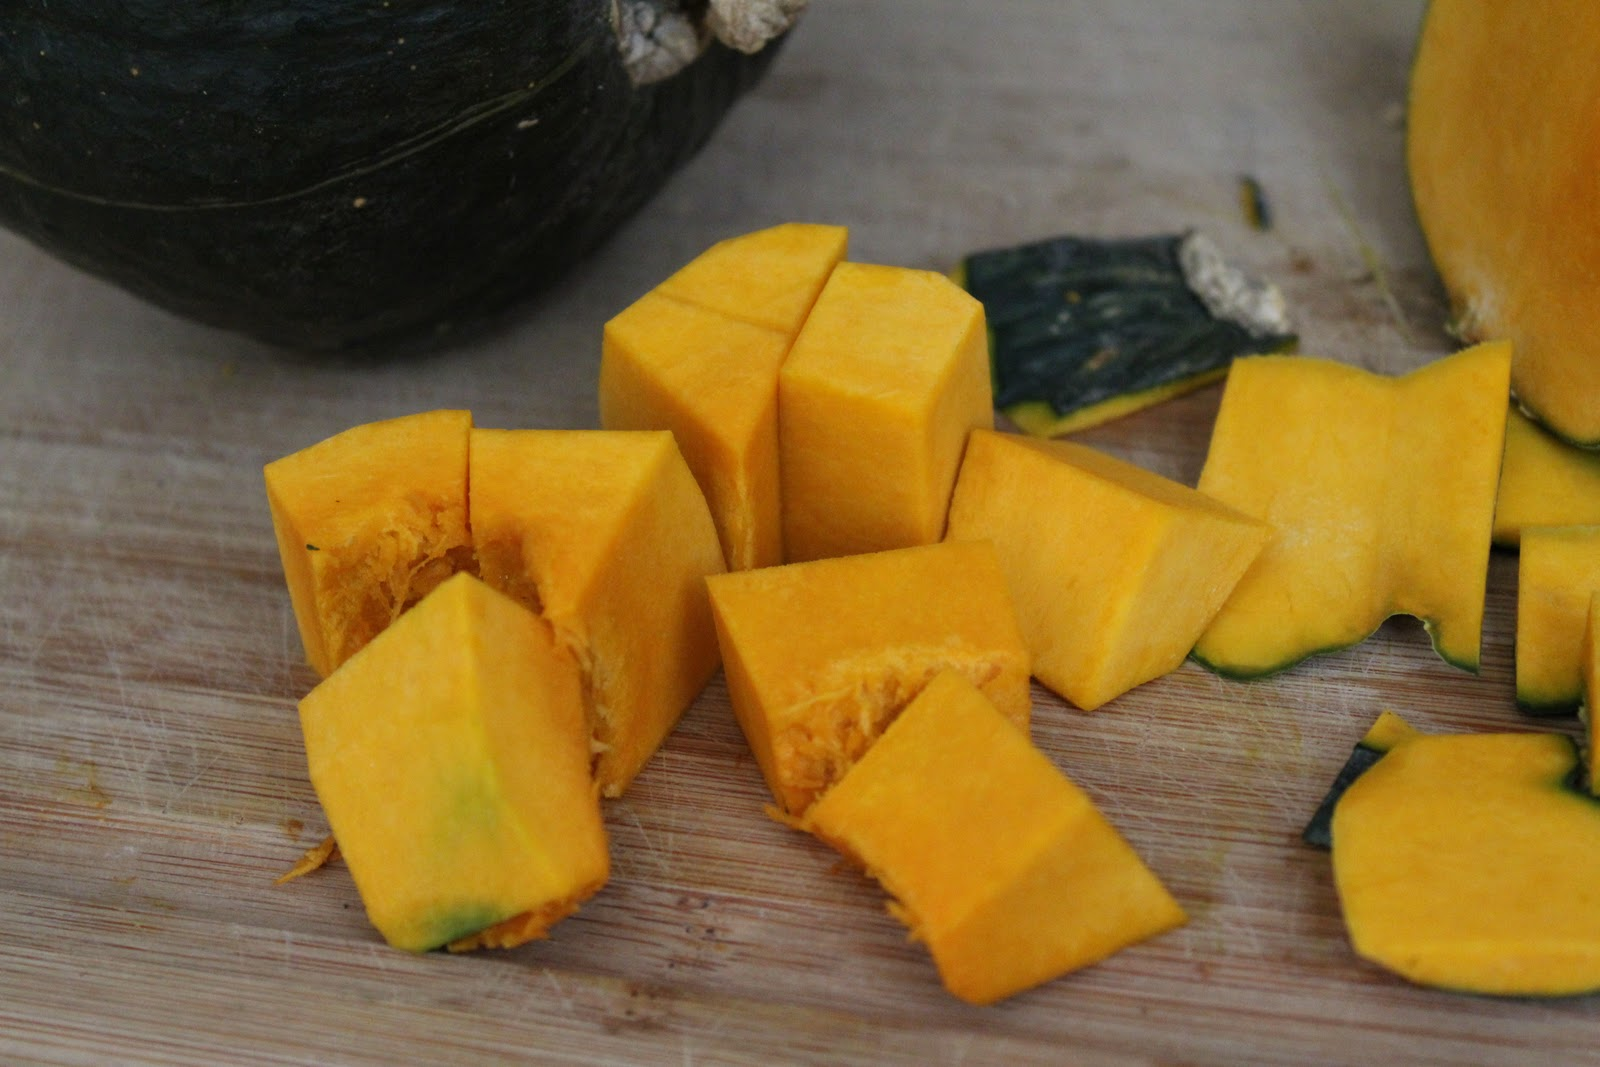 Cut squash into desired size pieces